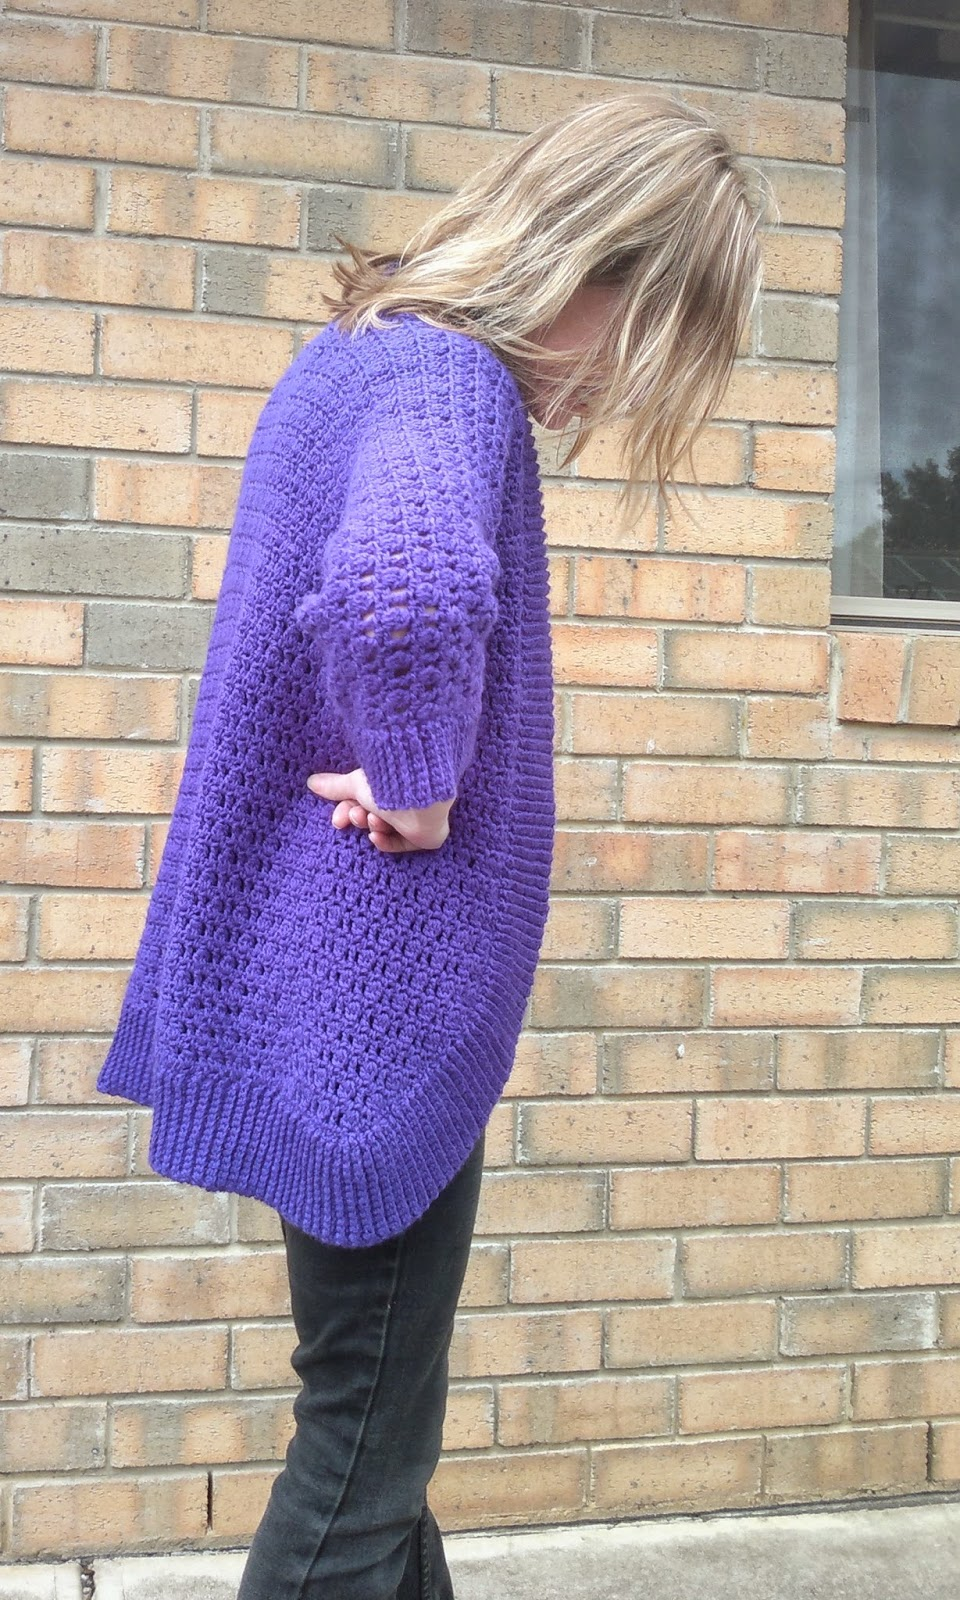 The right hand side view of the Belcarra cardigan modelled by Jodie.